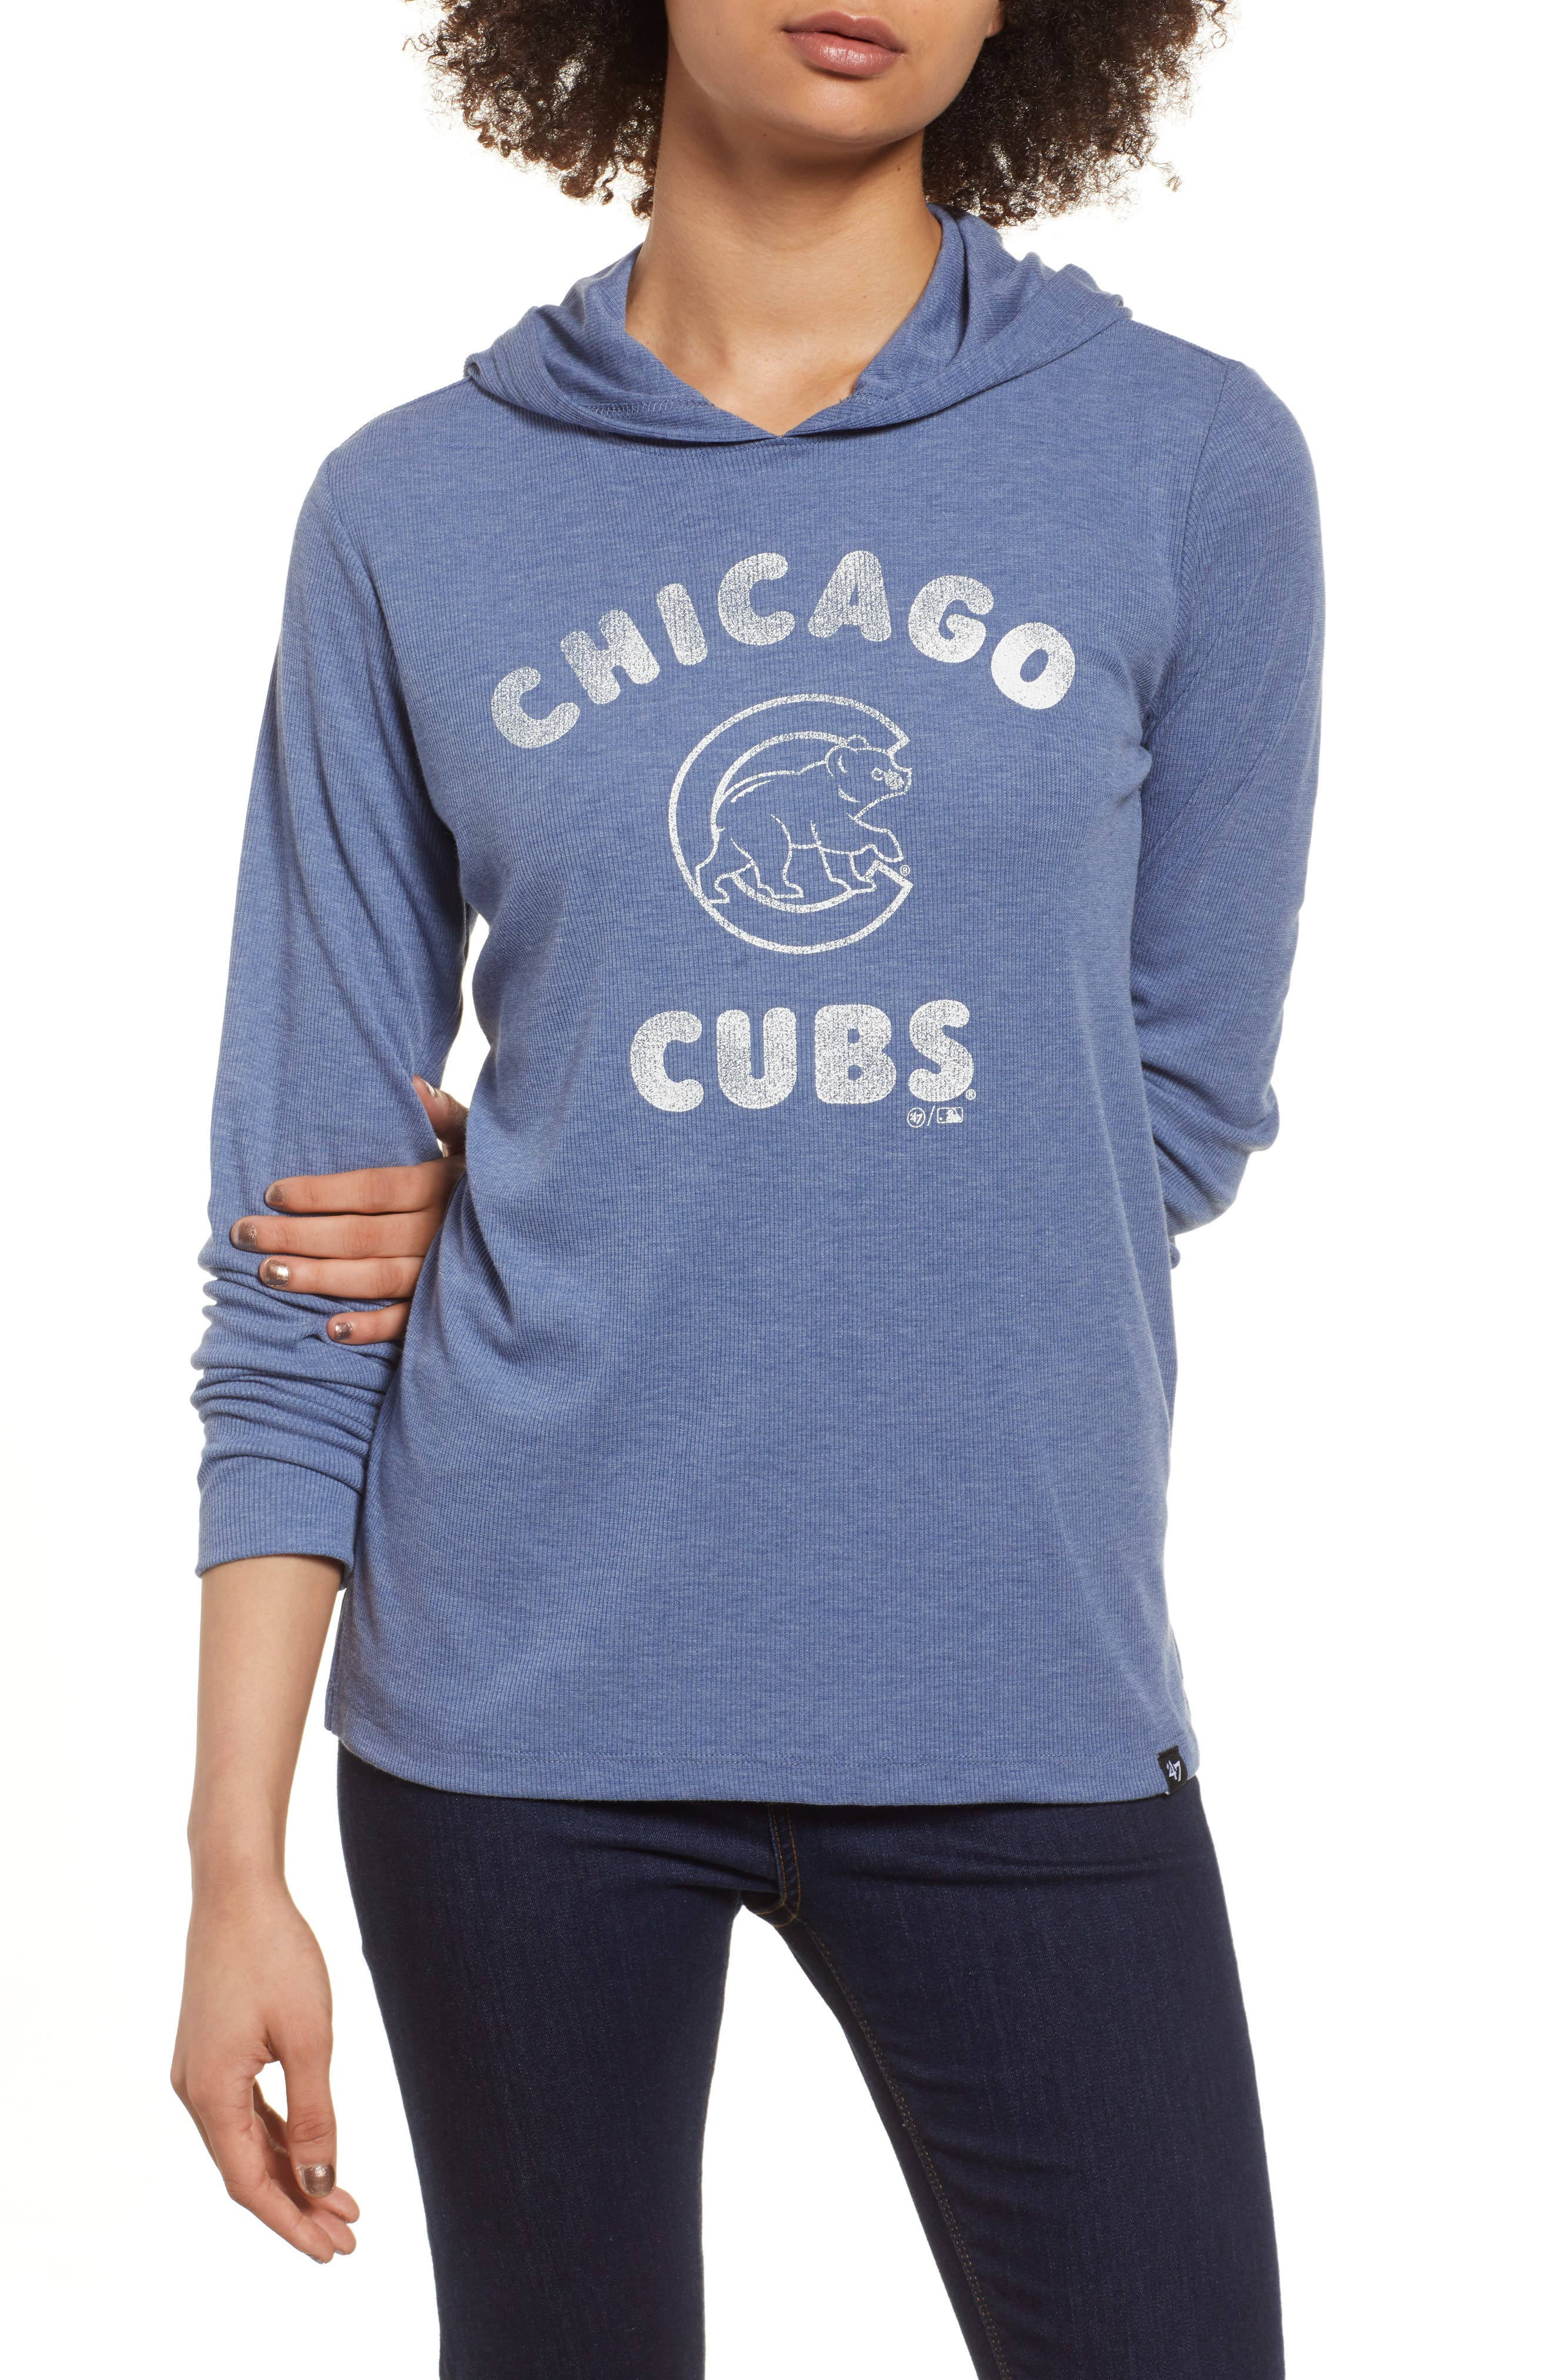 Campbell Chicago Cubs Rib Knit Hoodie,                             Main thumbnail 1, color,